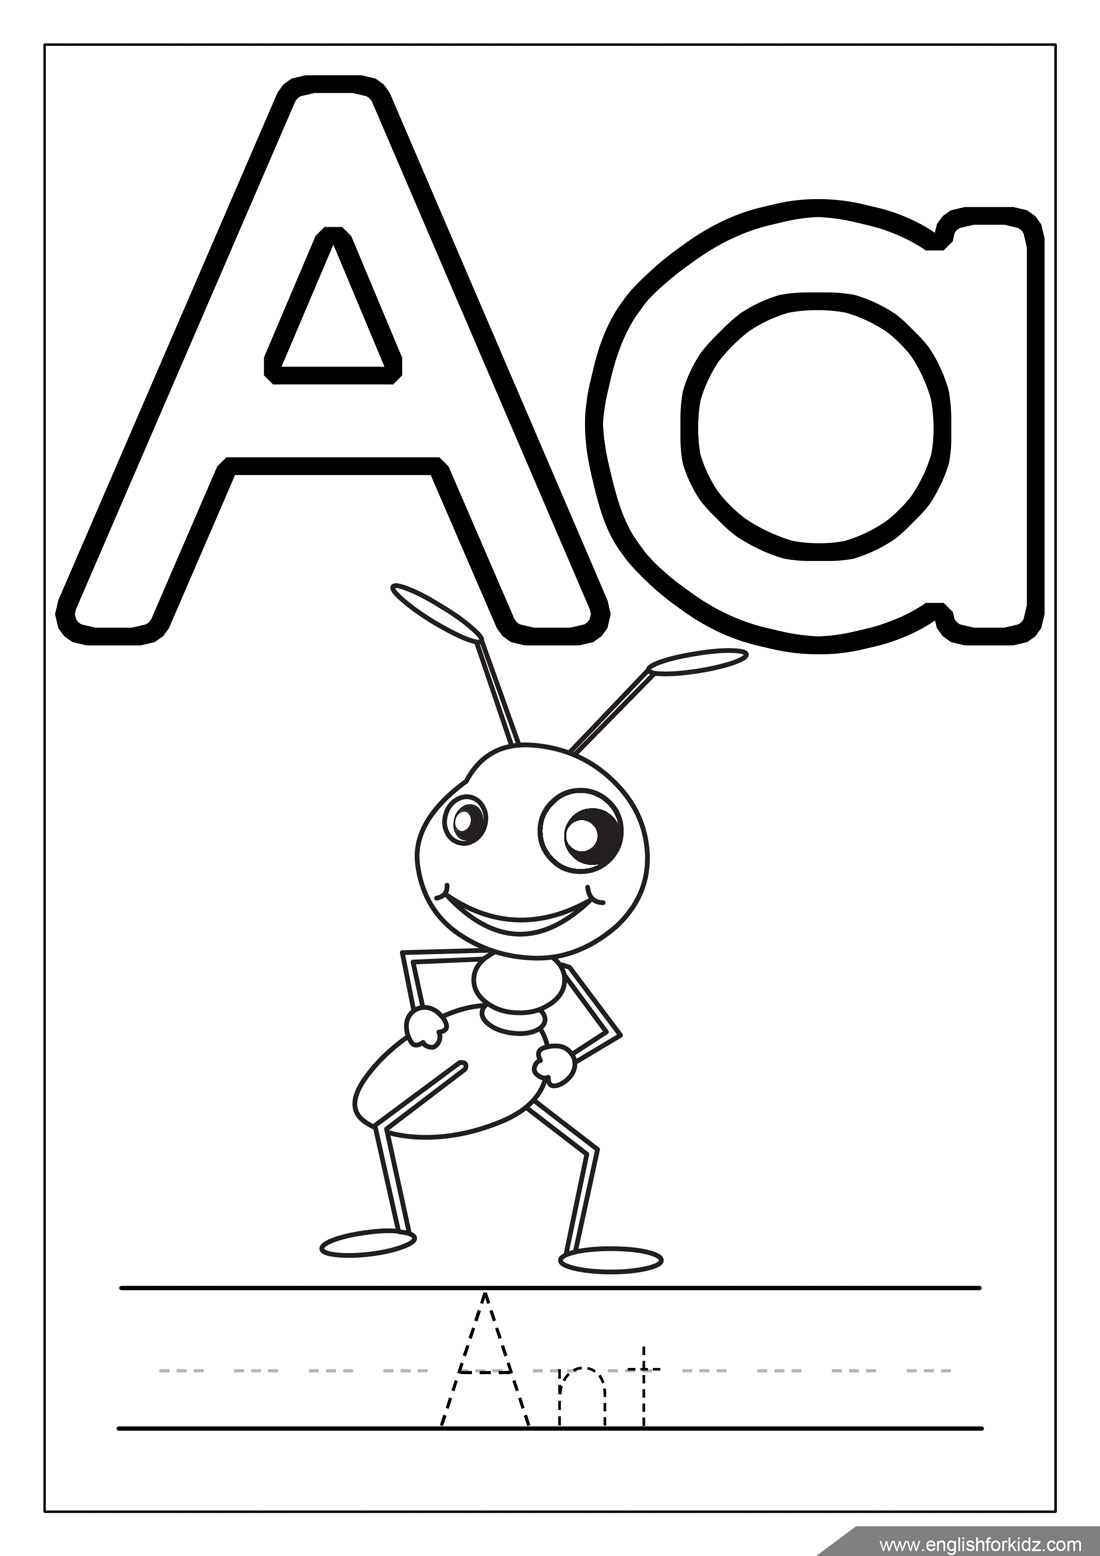 coloring pages of letter a letter a alphabet coloring pages 3 free printable coloring a pages of letter